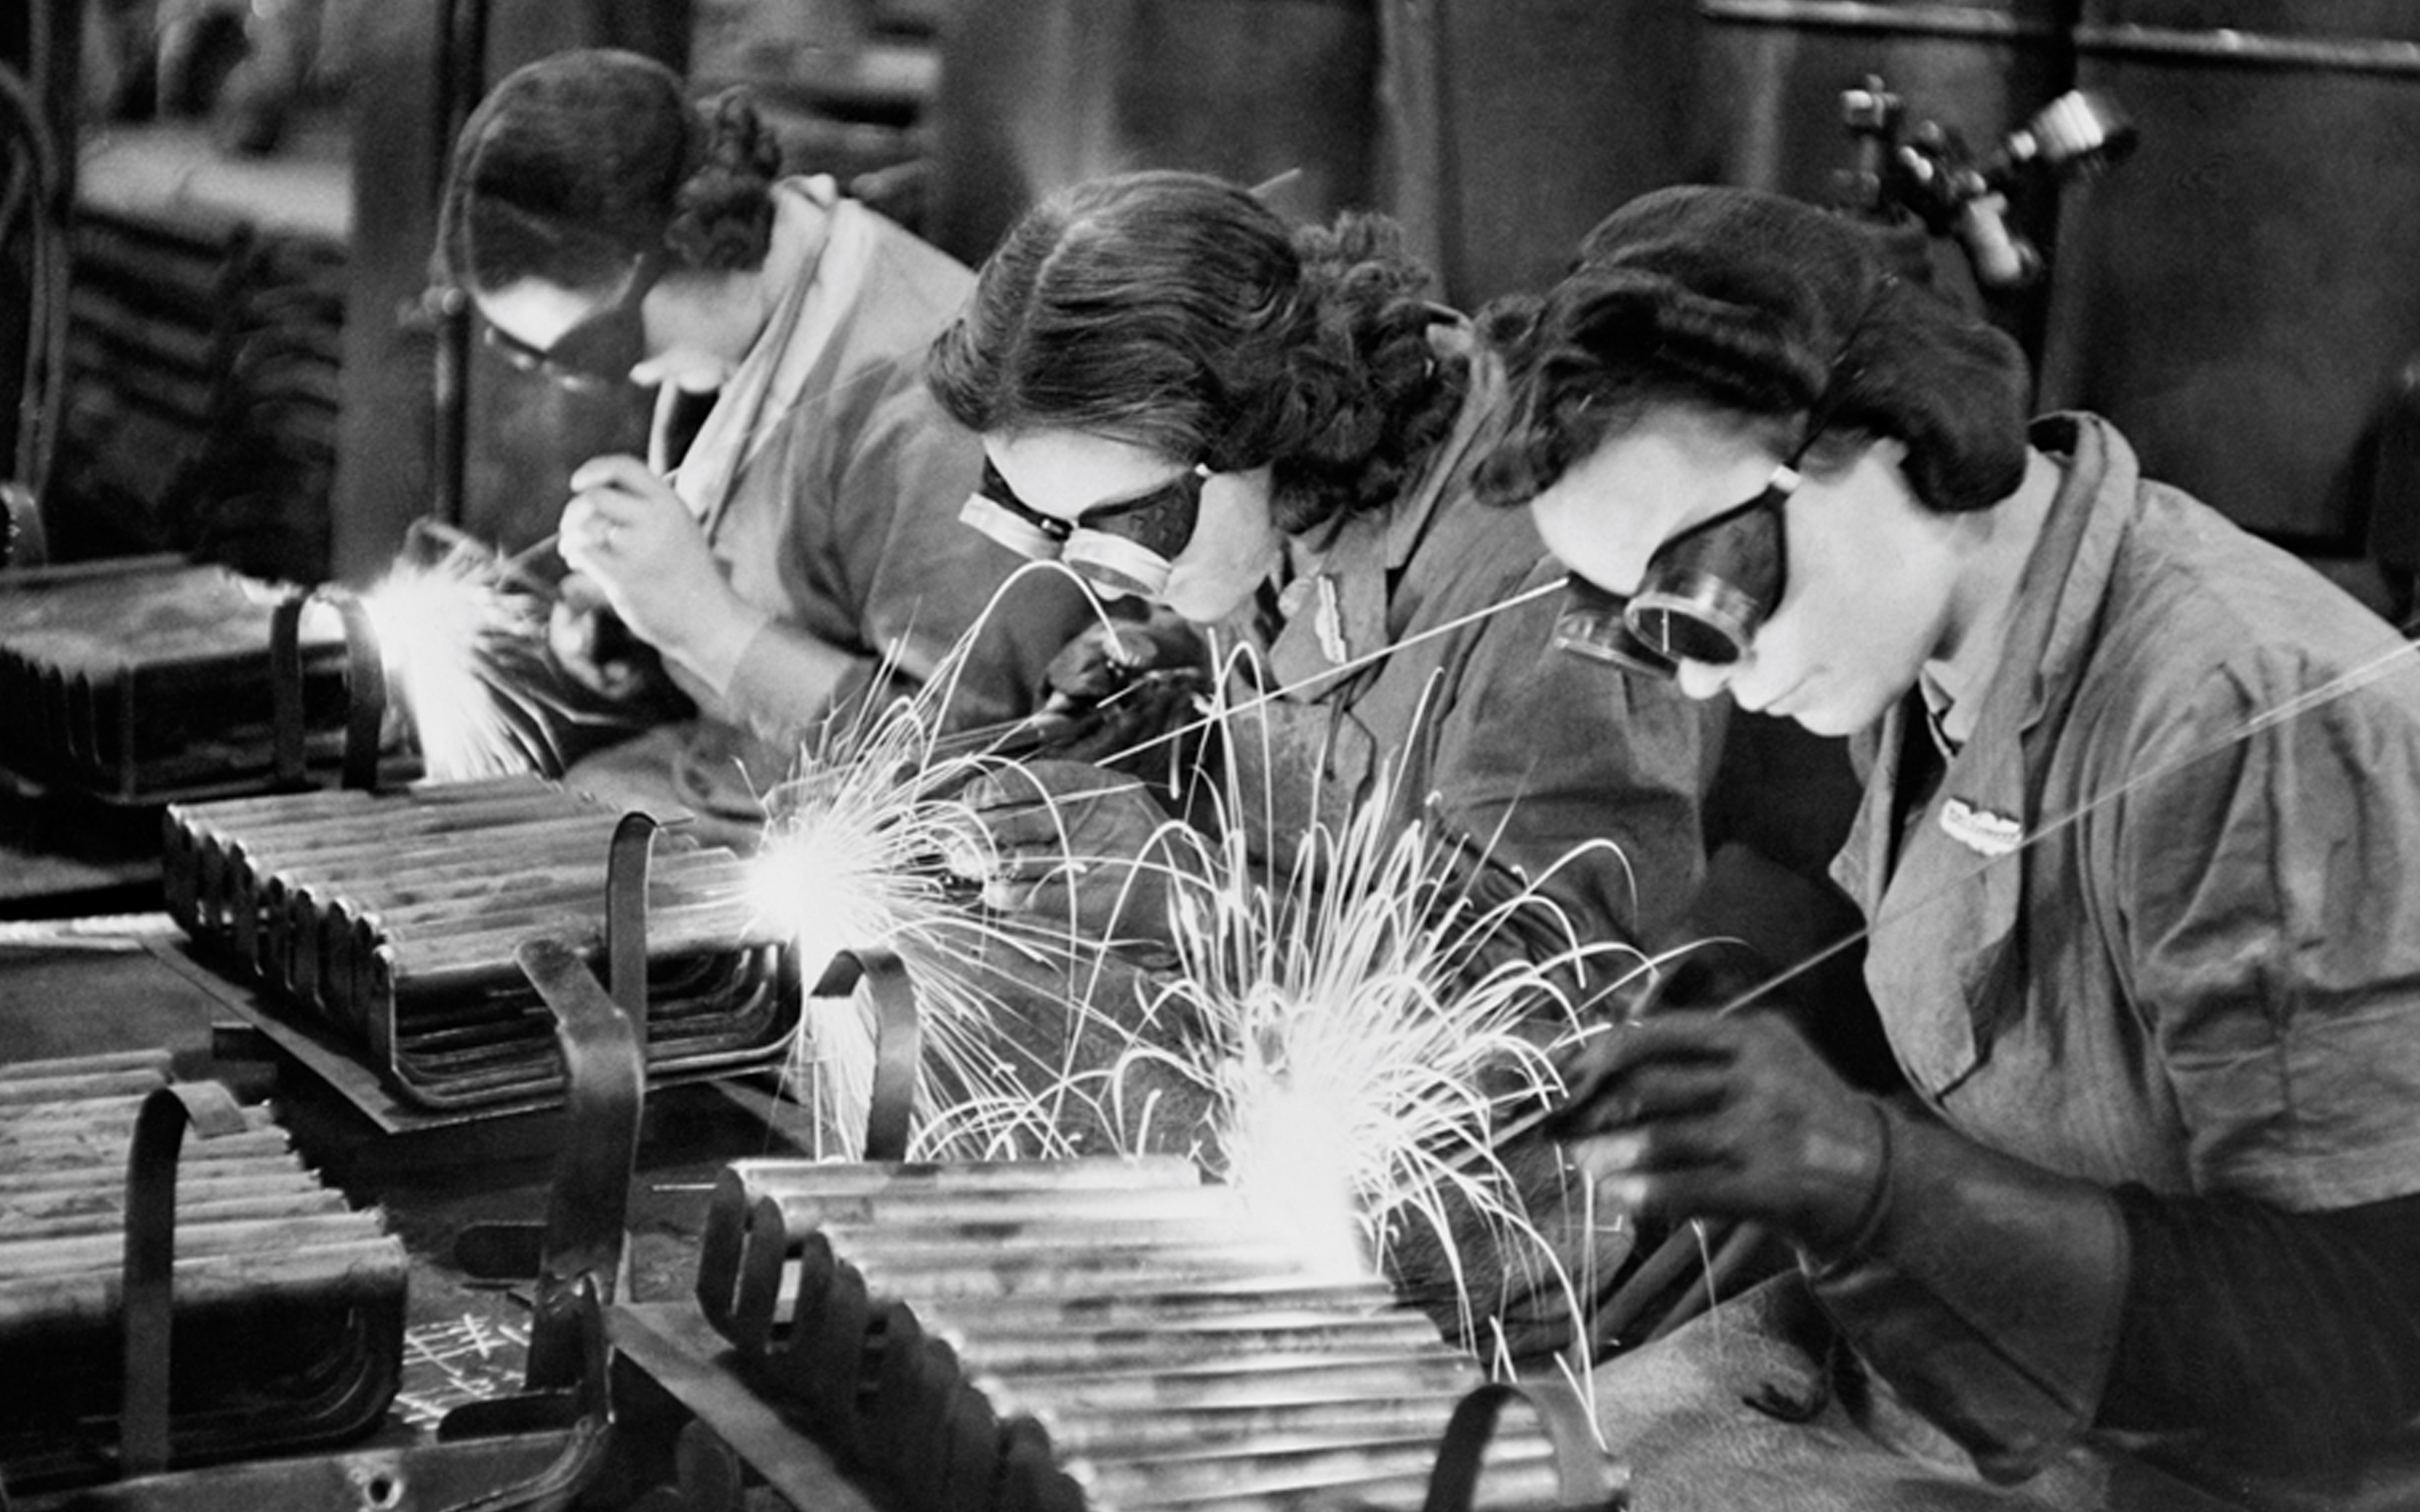 A photograph showing women welders making stirrup pump handles during the Second World War.